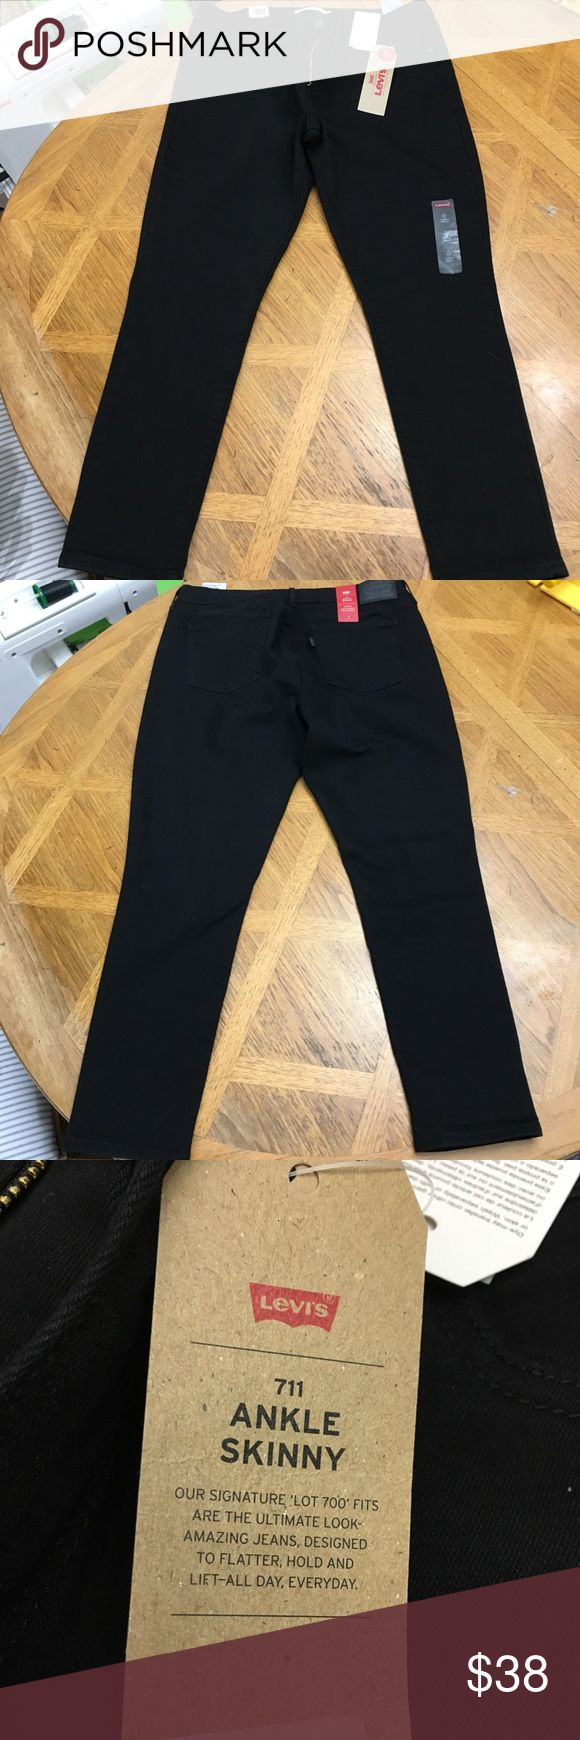 Women's Black Levi's Skinny Jeans 14 Brand new with tags Women's Black 711 Ankle Skinny Jeans in size 14/32. Levi's Jeans